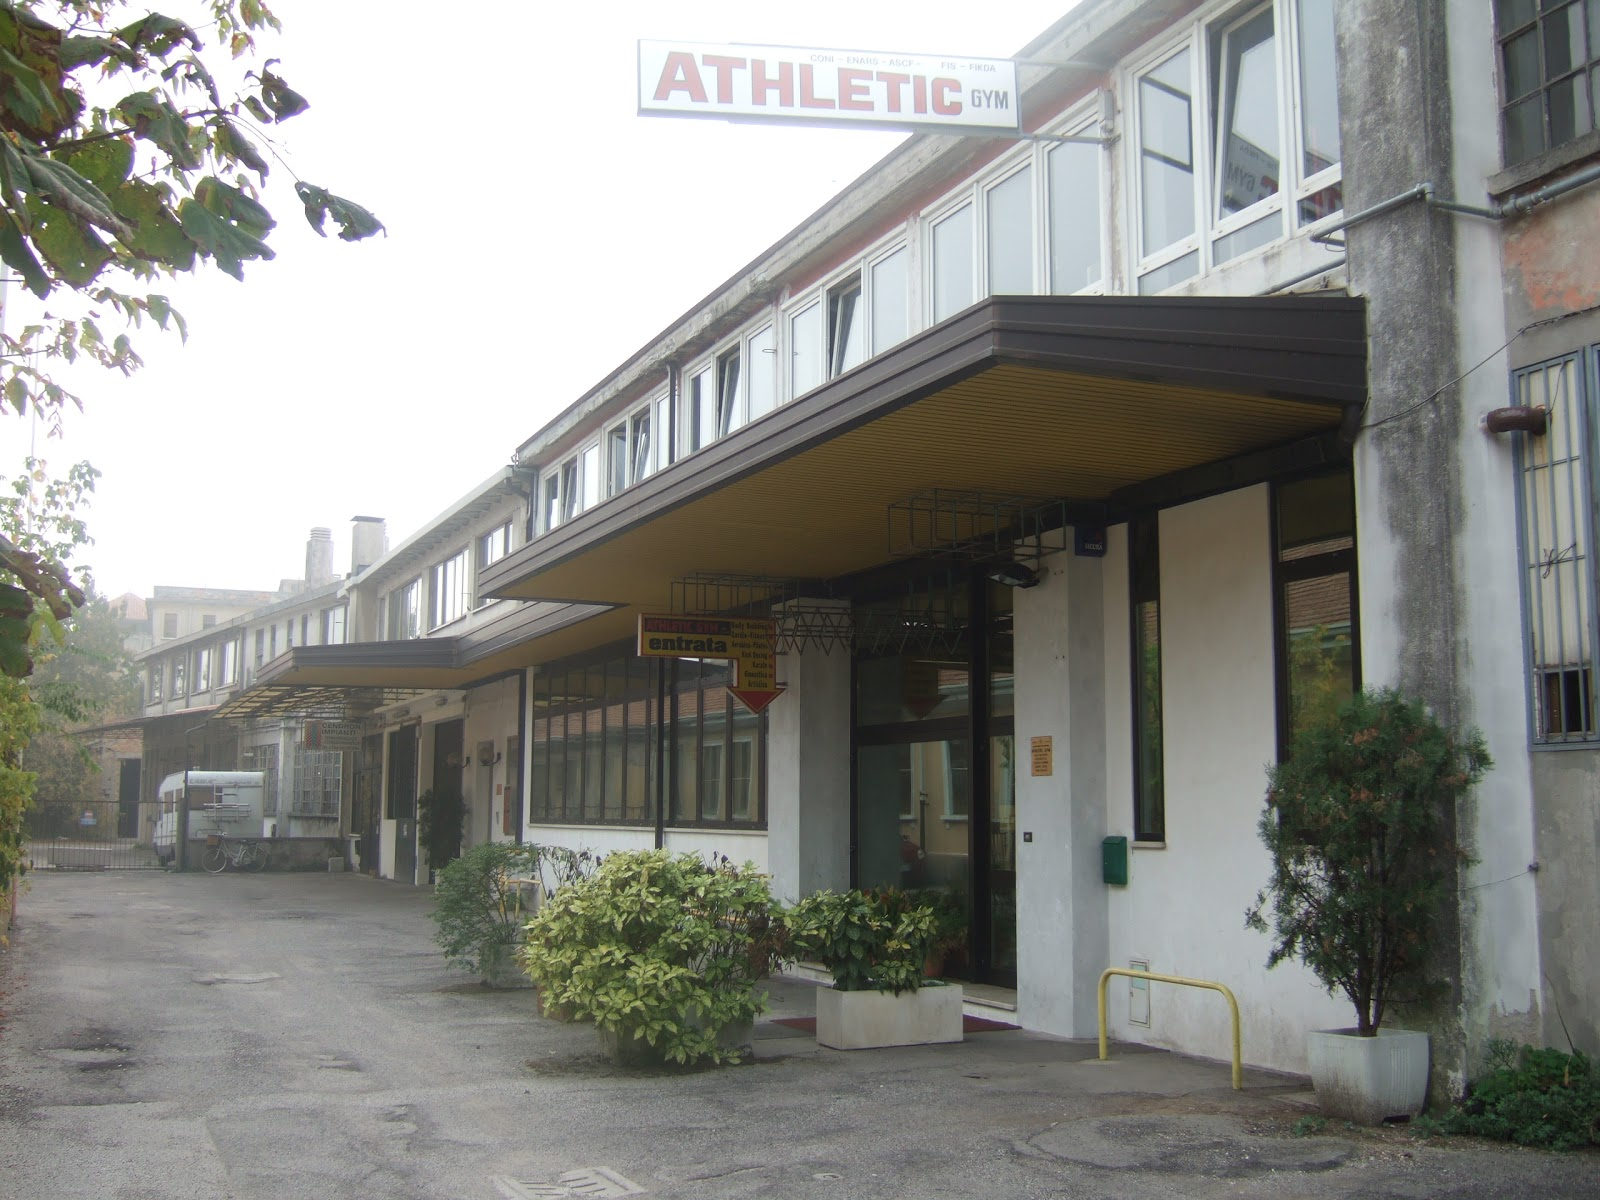 ATHLETIC GYM - photo